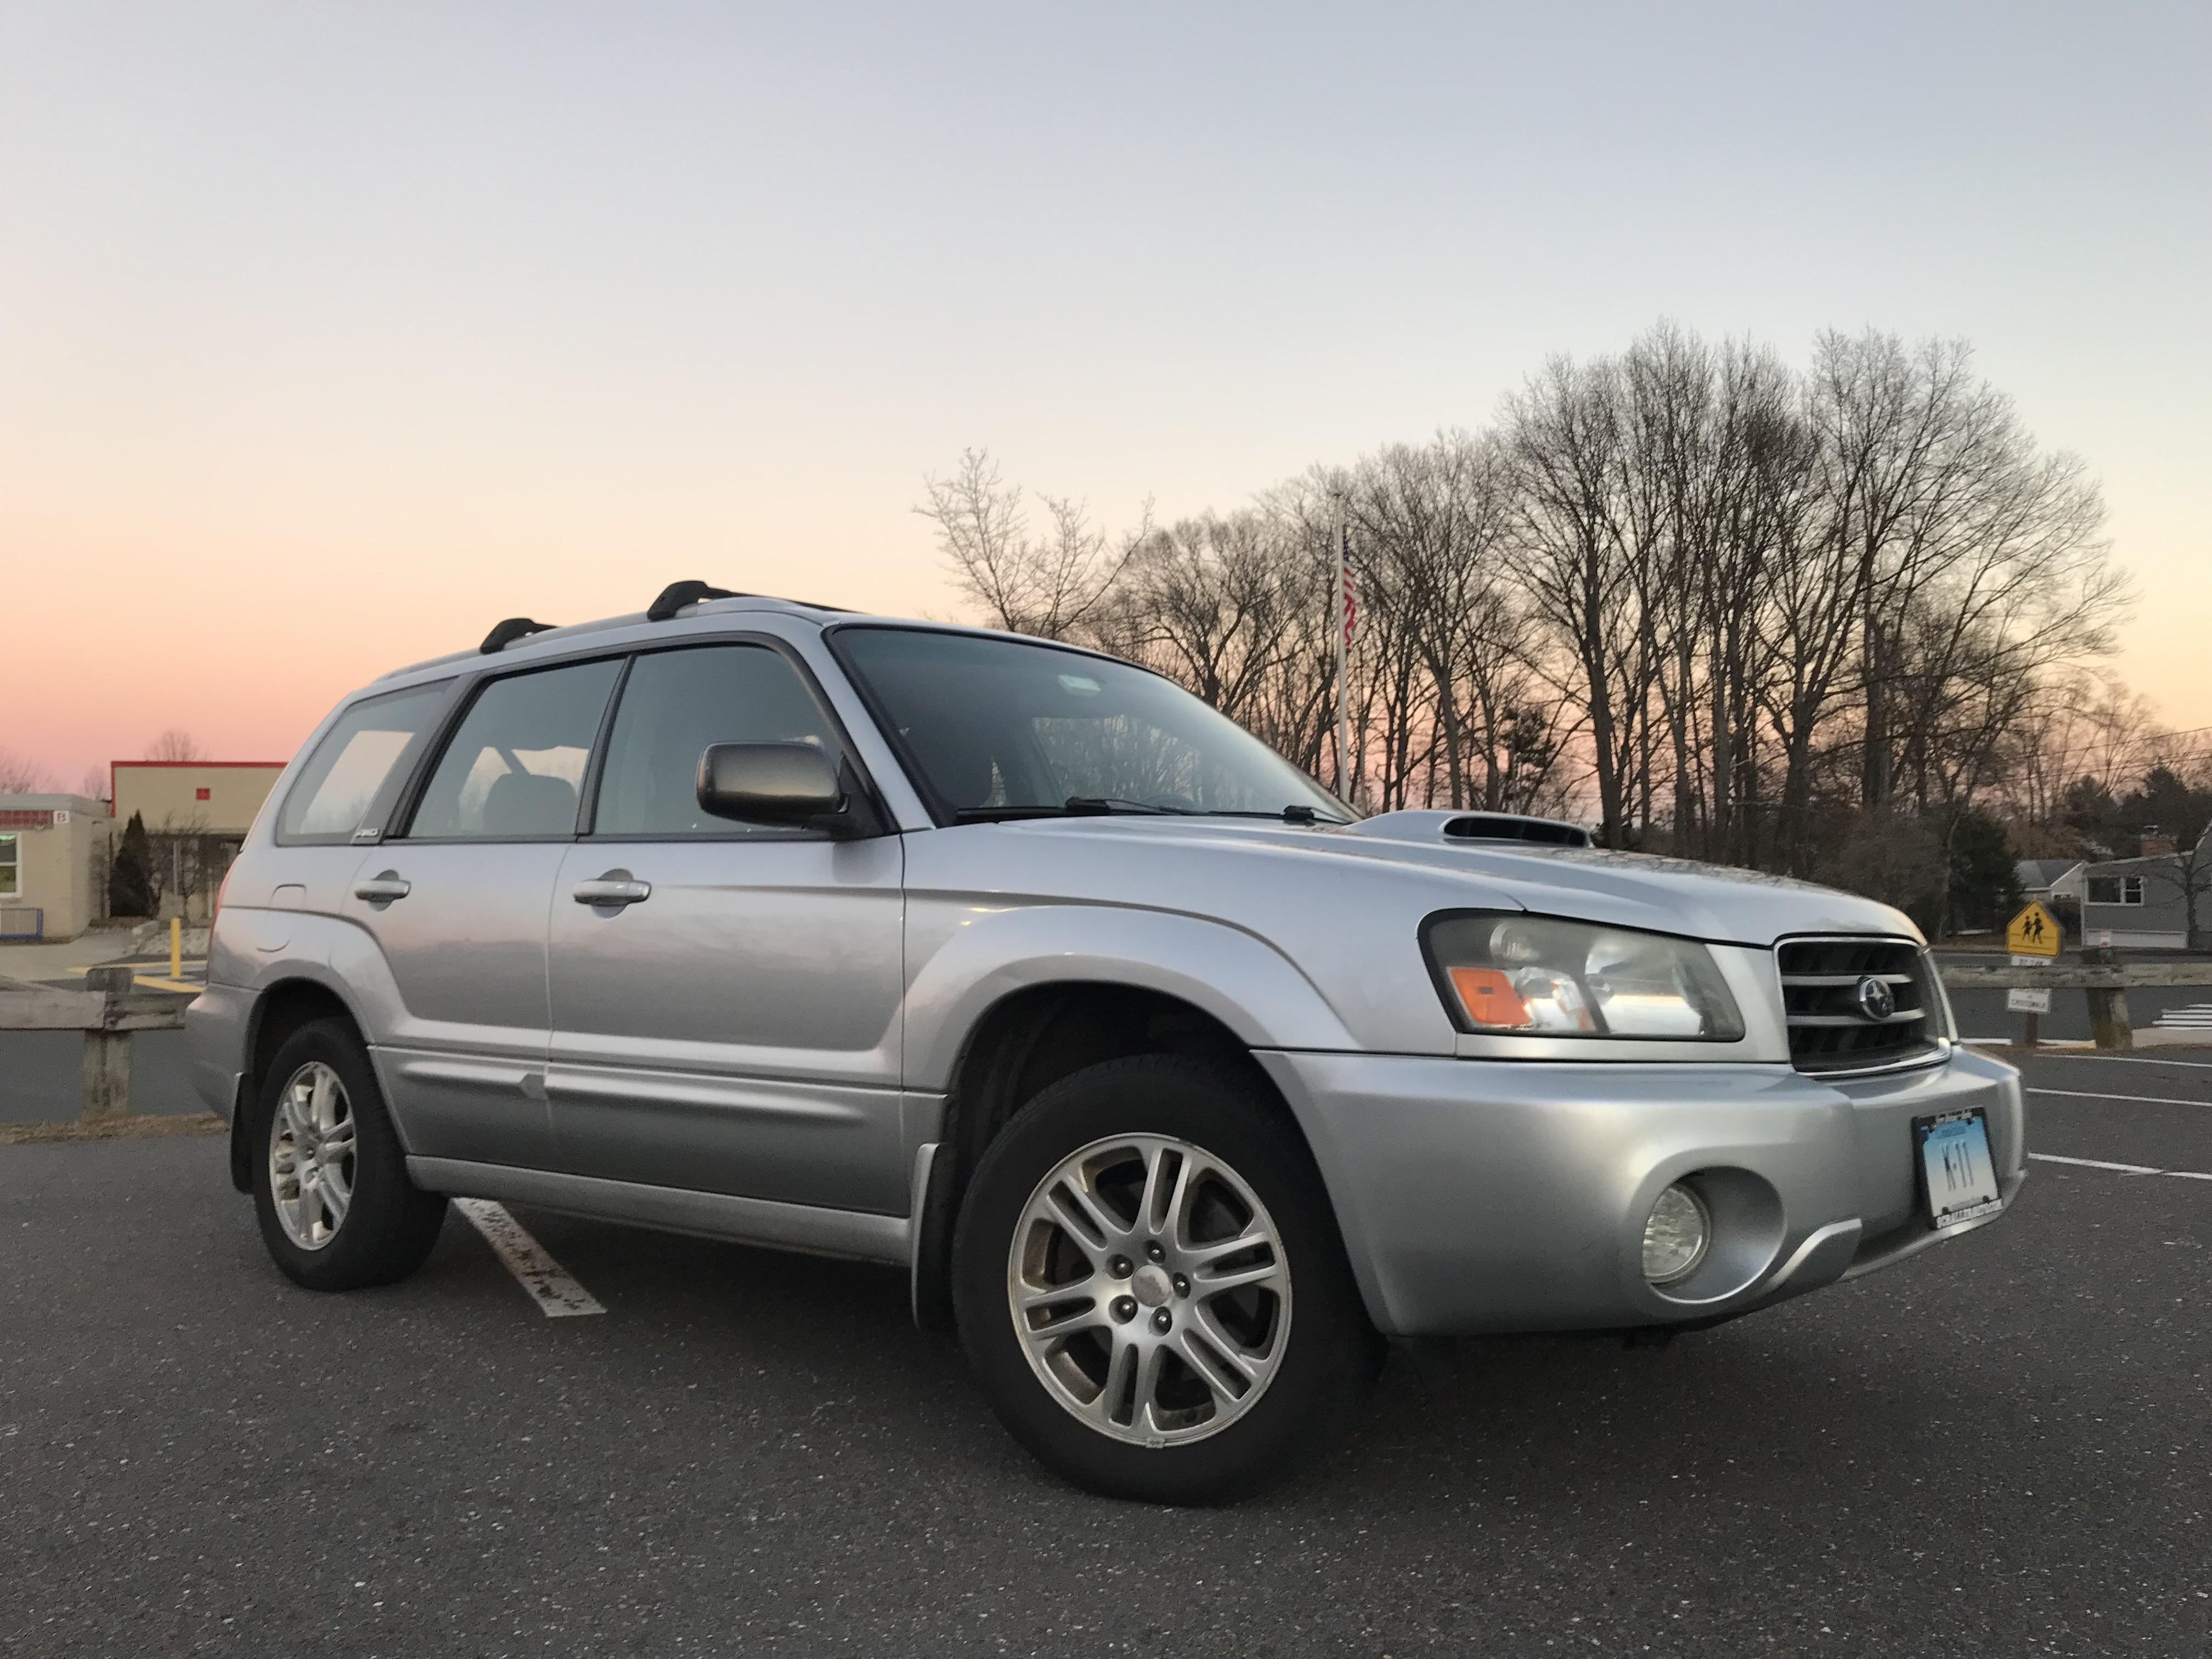 Picture of the front of a silver 2003 Subaru Forester XT